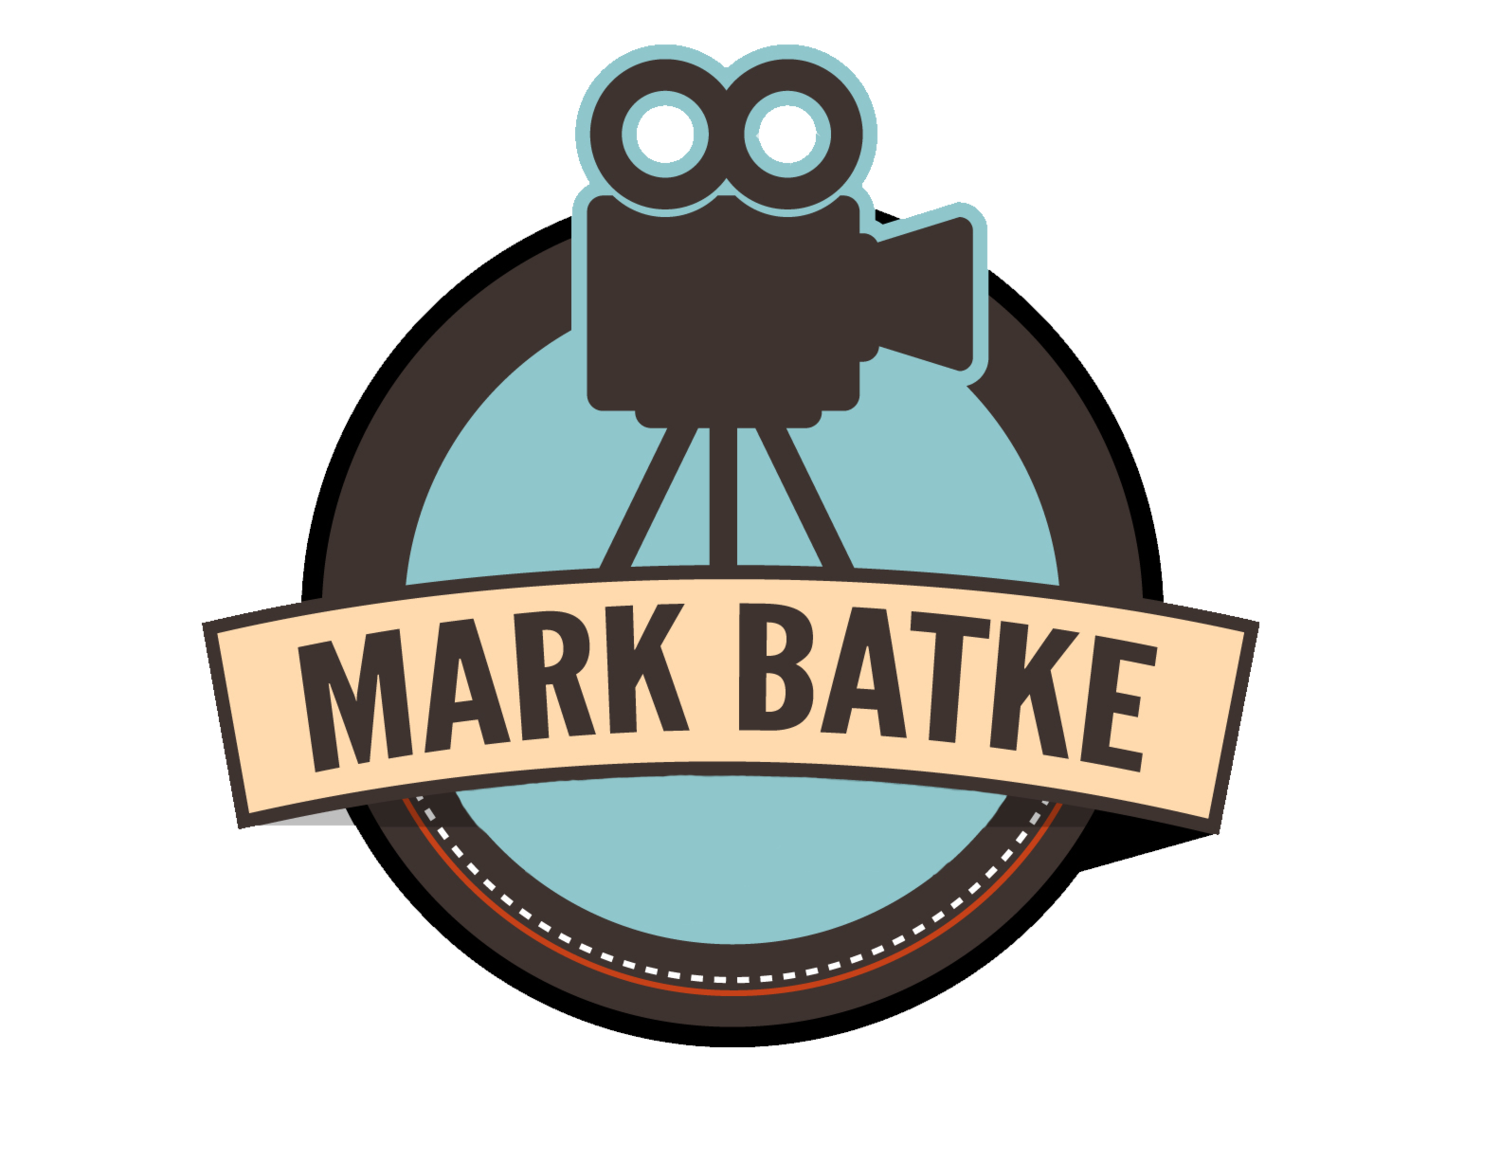 Mark Batke Creative